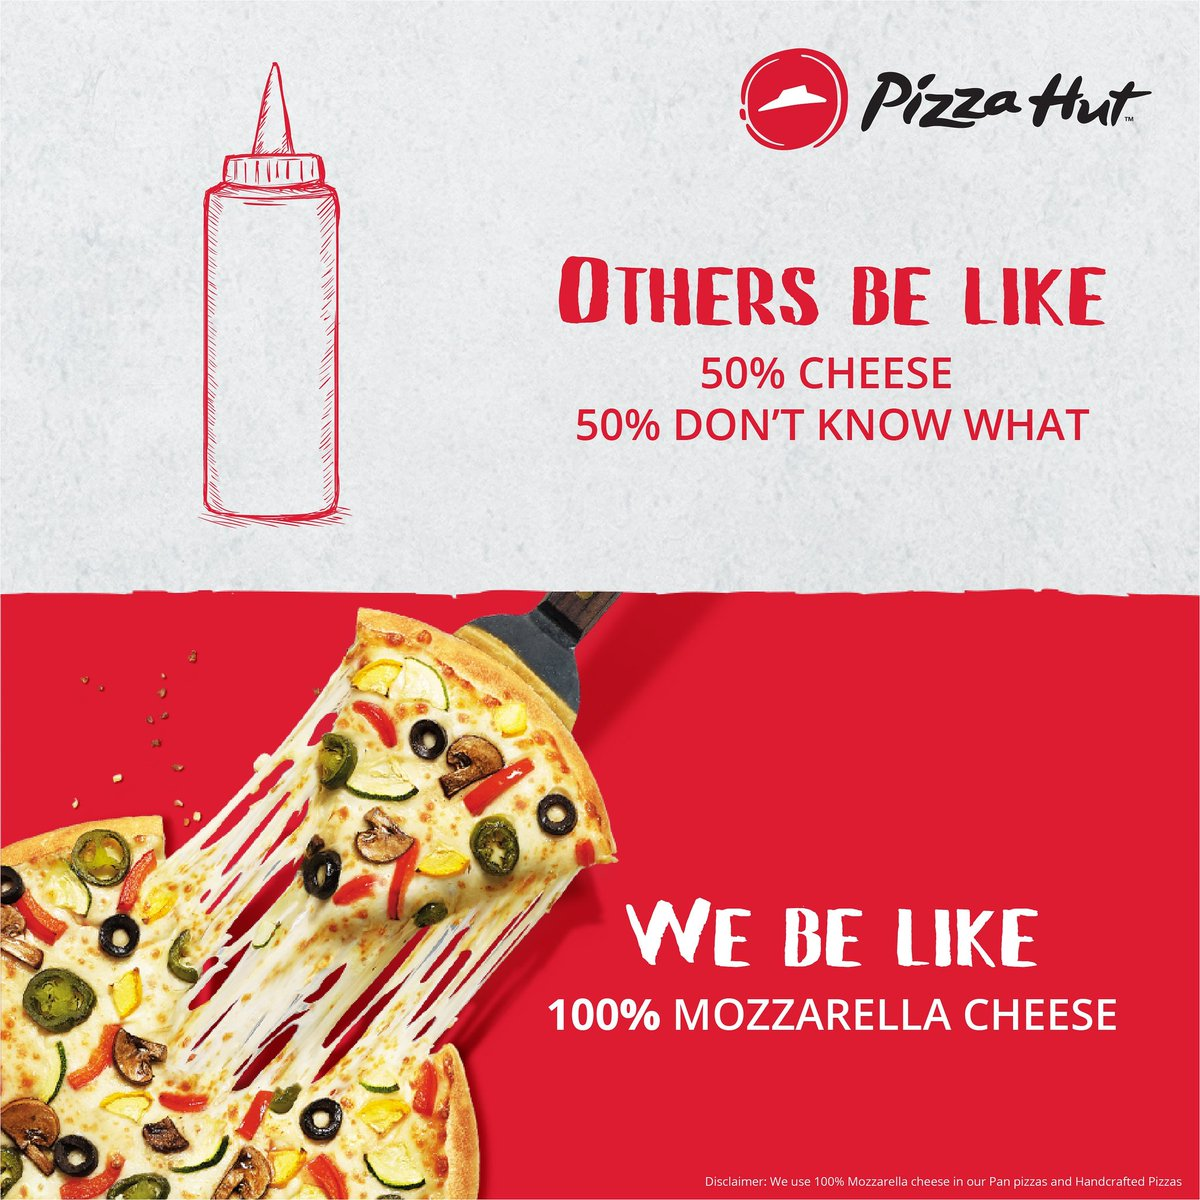 We try not to be so cheesy, but we cant help it TastiestPizzasAt99 https t.co ZIJBl49M5L